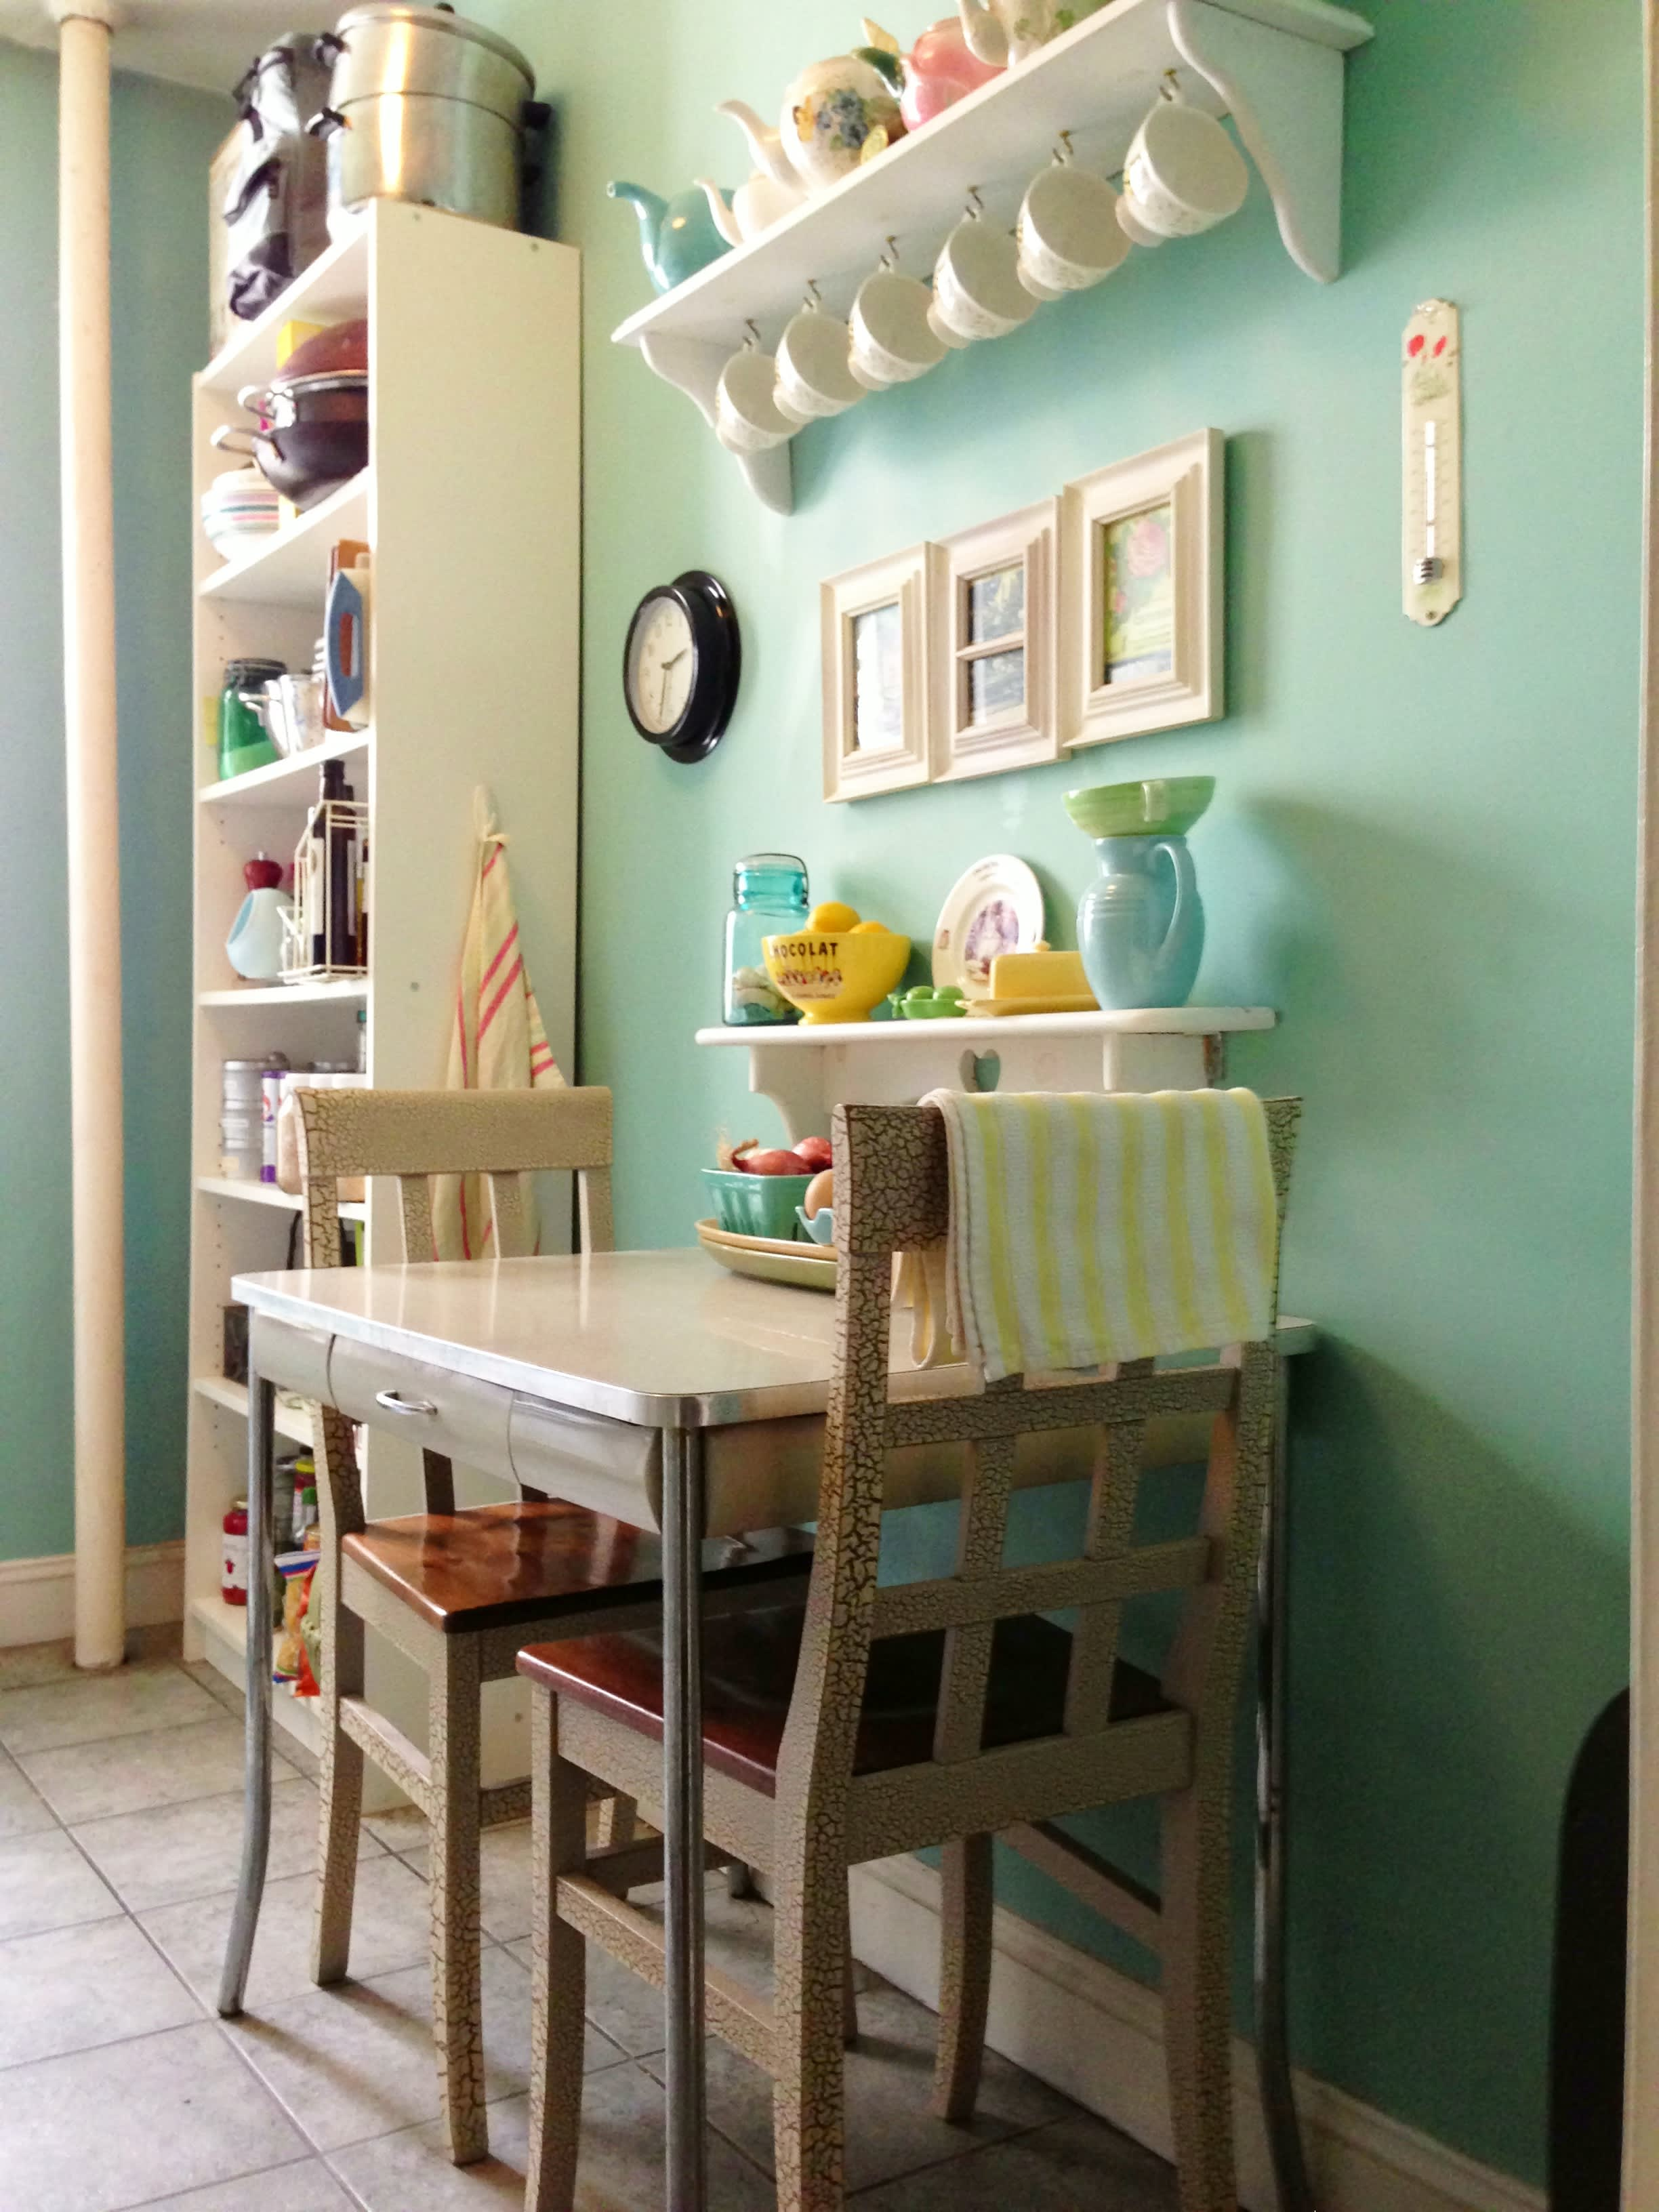 15 Small Space Kitchens, Tips, and Storage Solutions That Inspired Us: gallery image 5